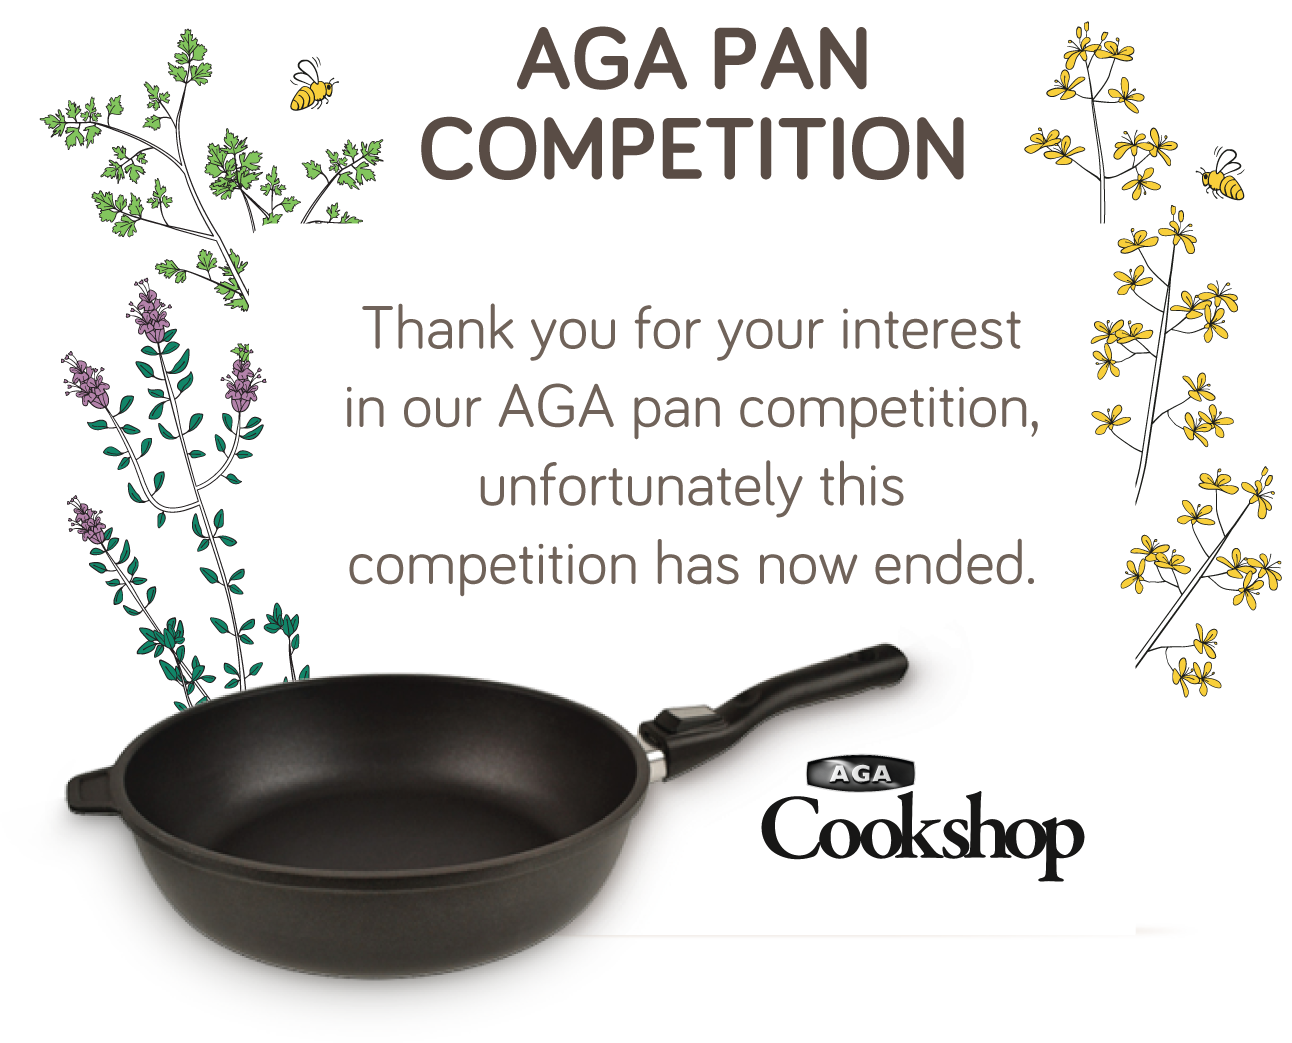 Thank you for your interest in our AGA pan competition, unfortunately this competition has now ended.